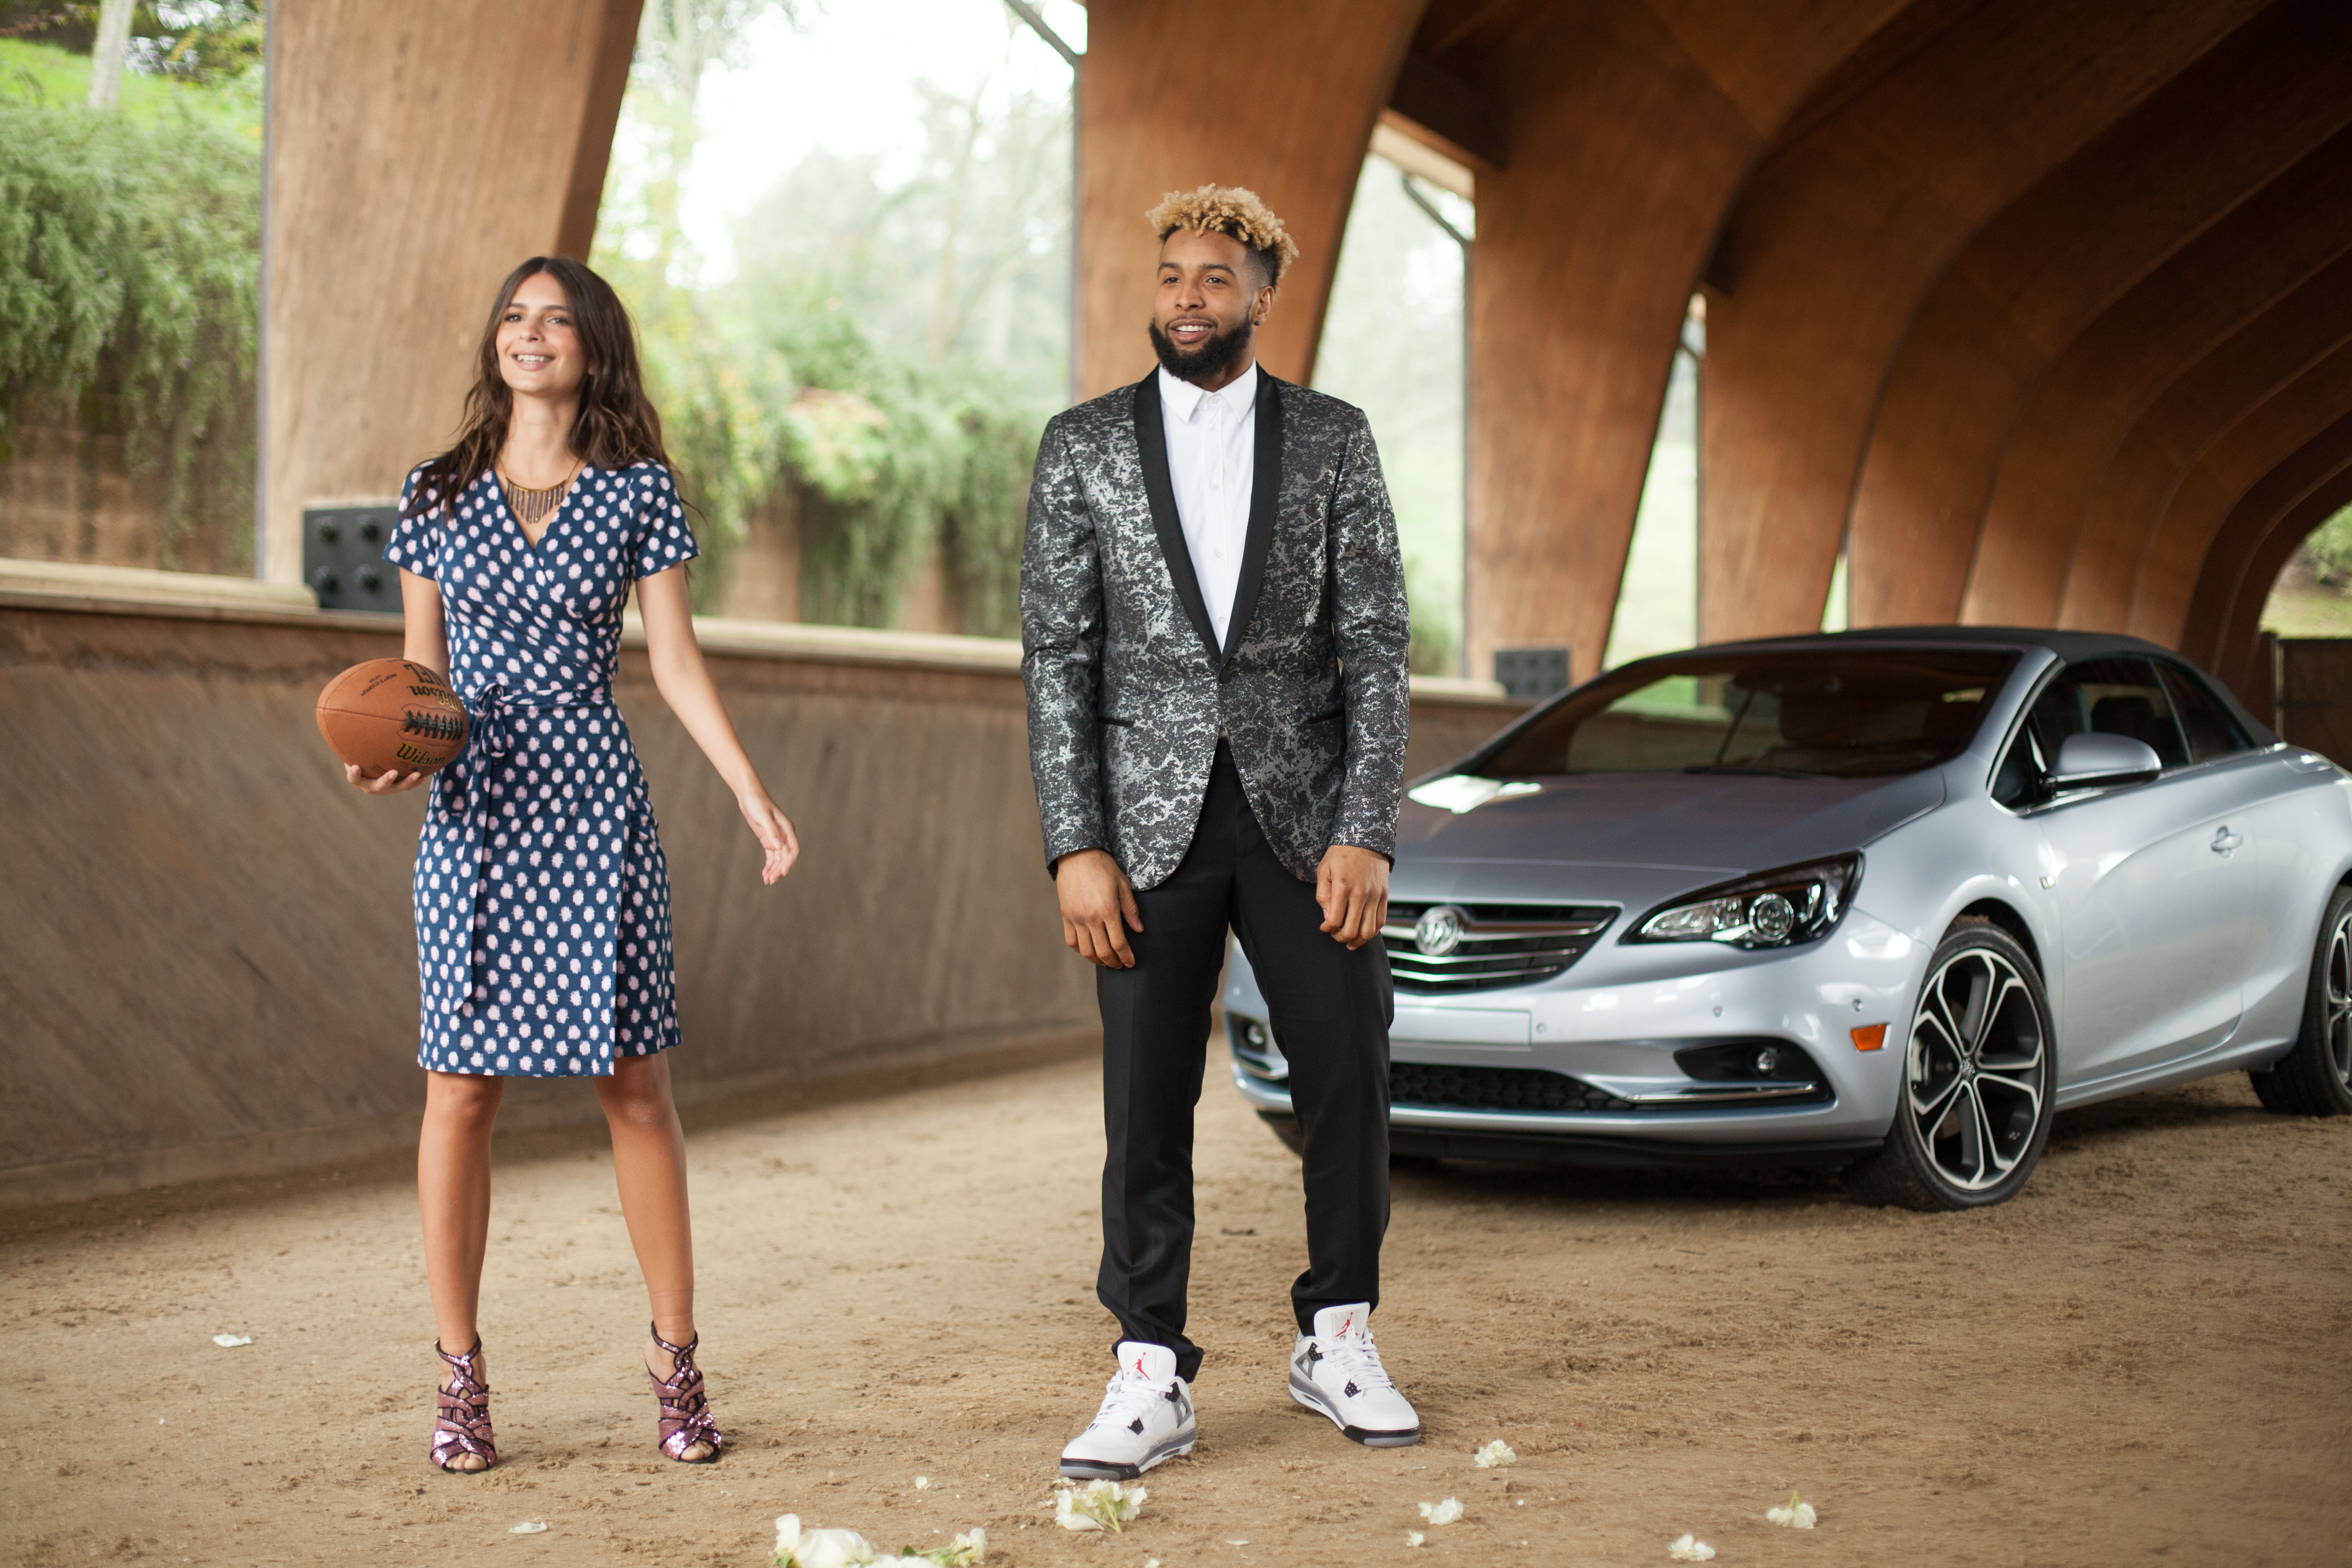 First ever buick super bowl ad features odell beckham jr and emily ratajkowski